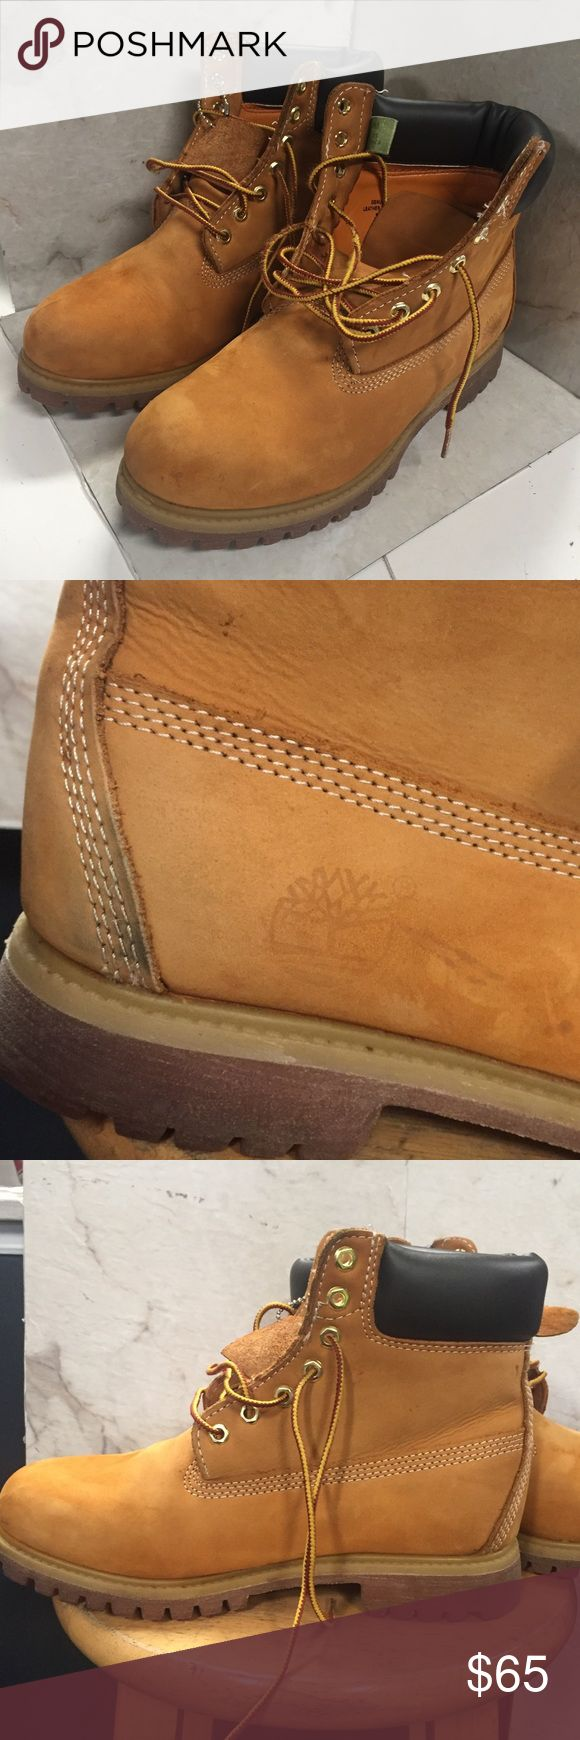 Men's 9 Women's 11 Wheat Timberland Boots Classic - visible signs of wear (Pictured)// most noticeable on Inner Side of left Shoe. Soles are in excellent condition. (Listed 4/27/17)  😊Private Offers Considered on older inventory.    😊Like this item for pricing updates (Price Lowers On OLDER inventory)    😊Items ship ASAP   😊Questions asked after 6pm Or on Sunday will be delayed but feel free to ask!   😊Save 15% by purchasing more than one item! Timberland Shoes Boots